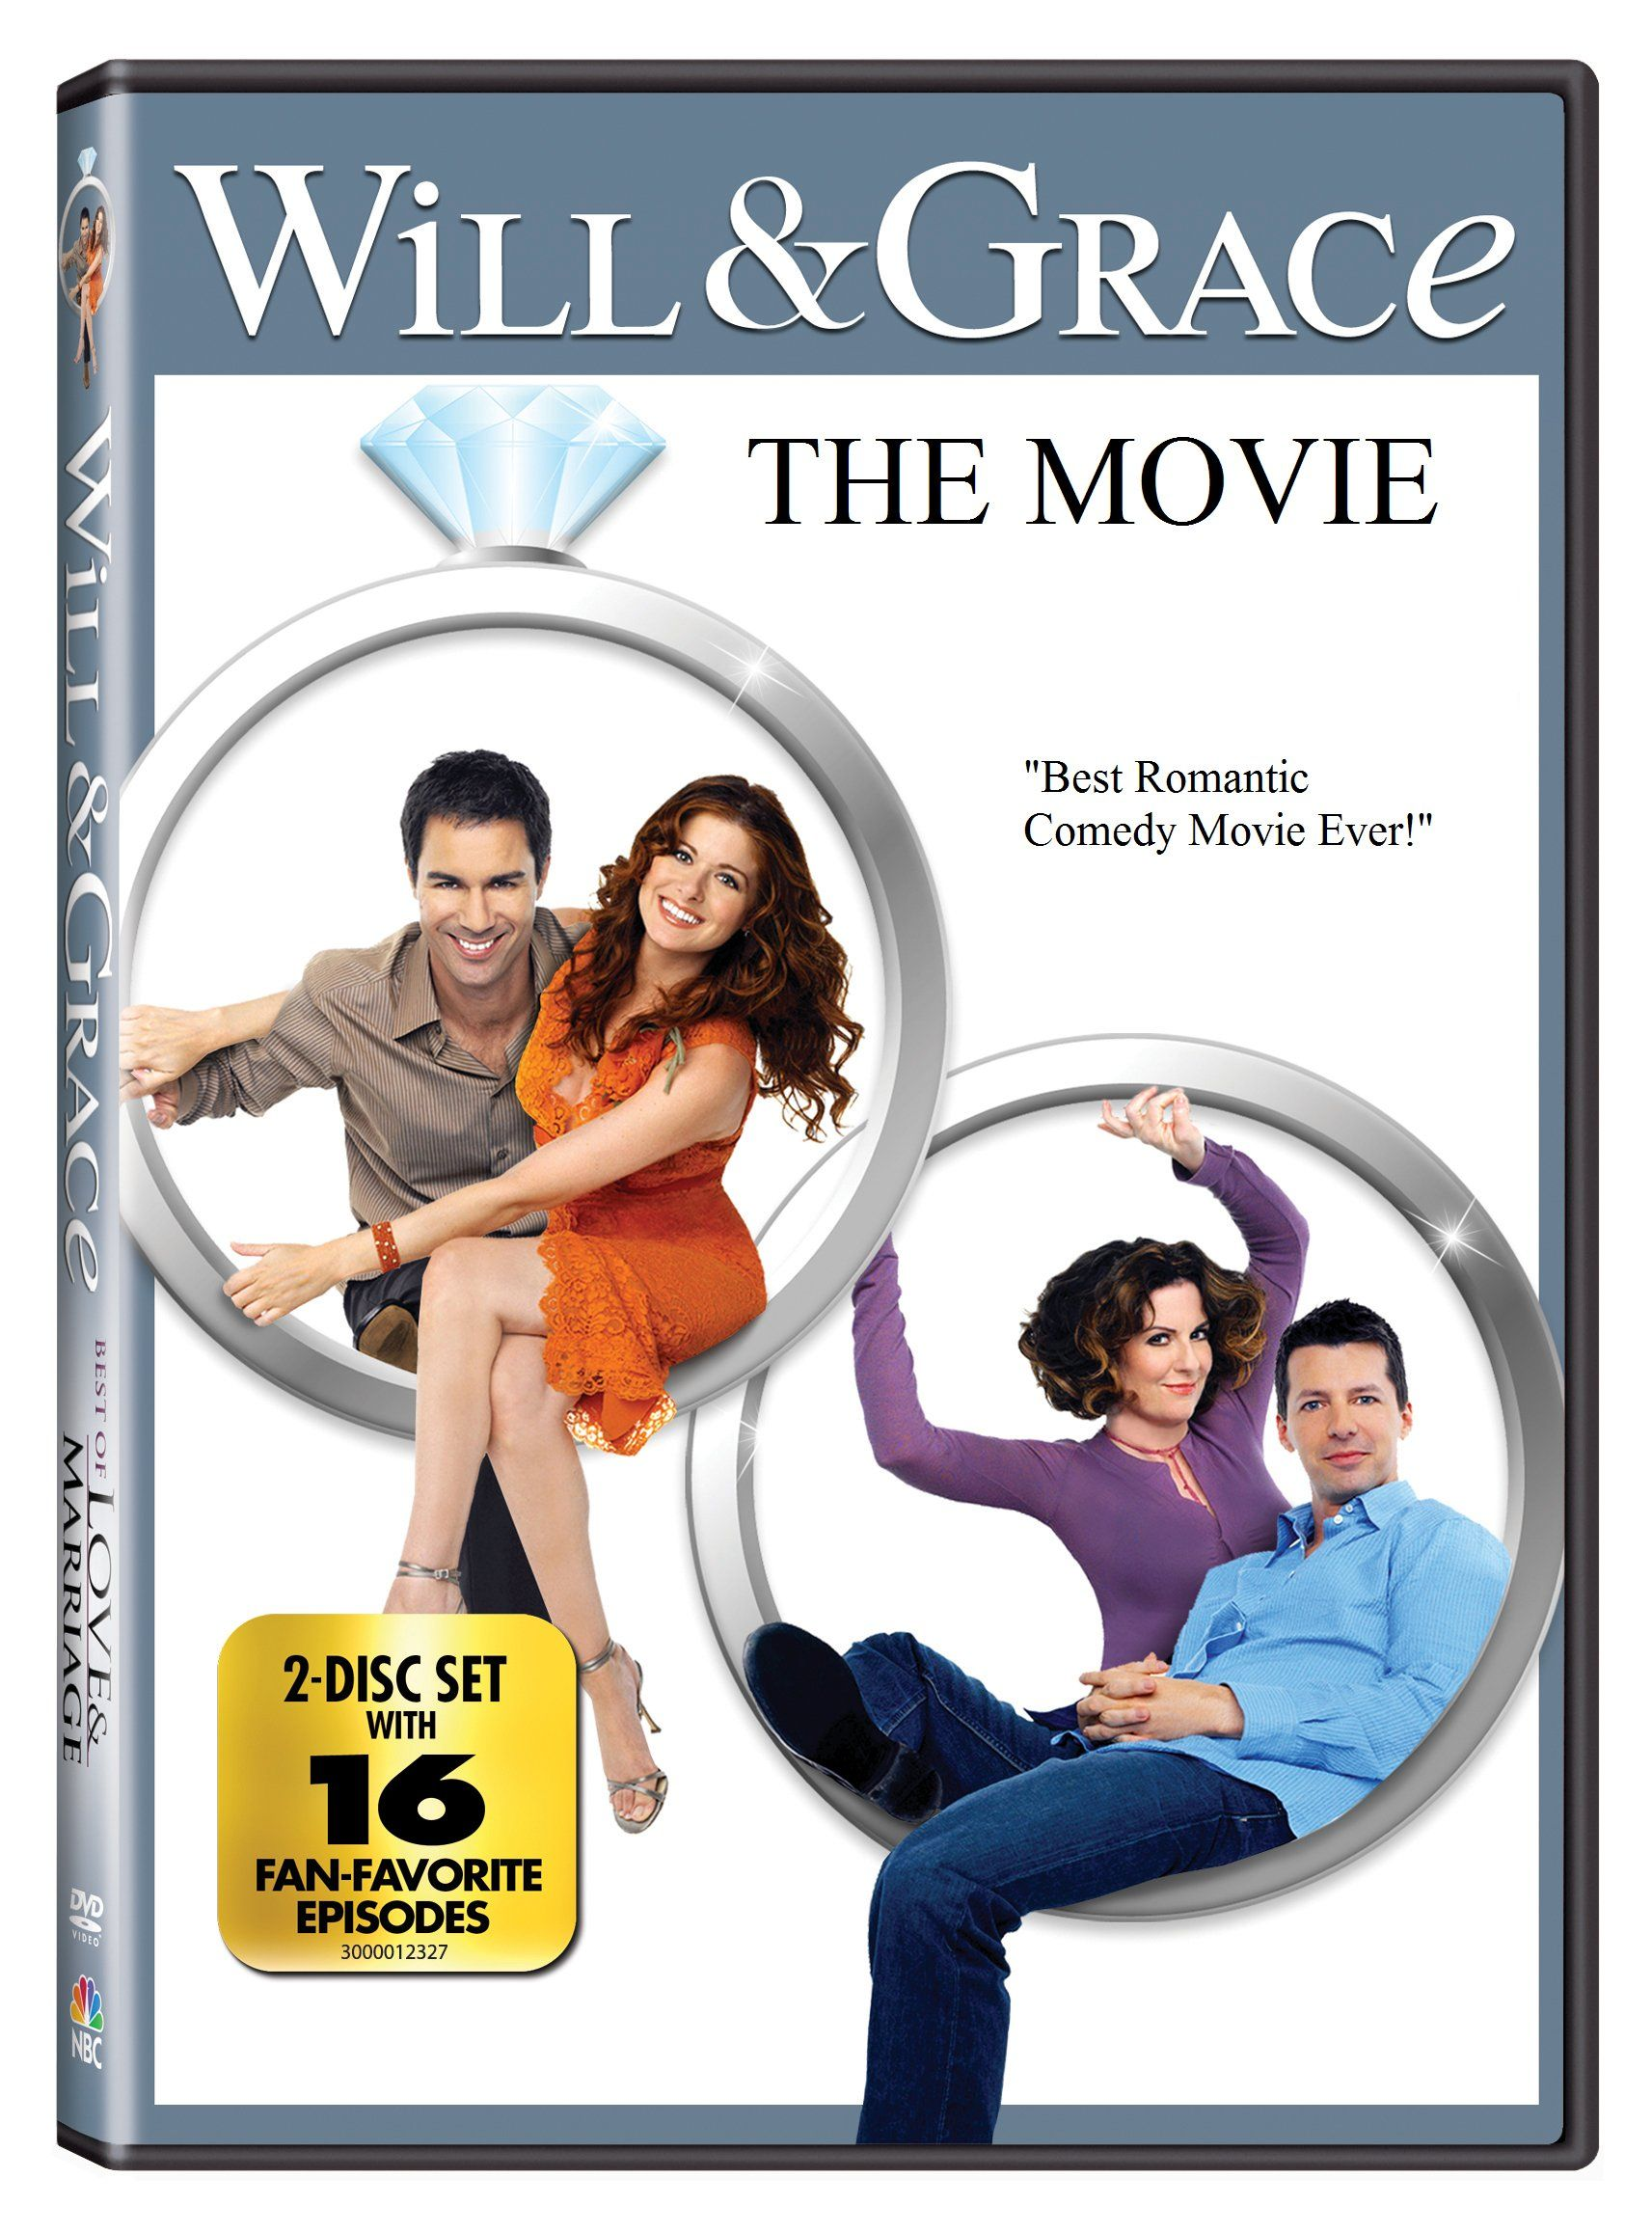 wiki newswill amp grace dvd release november 23 2010